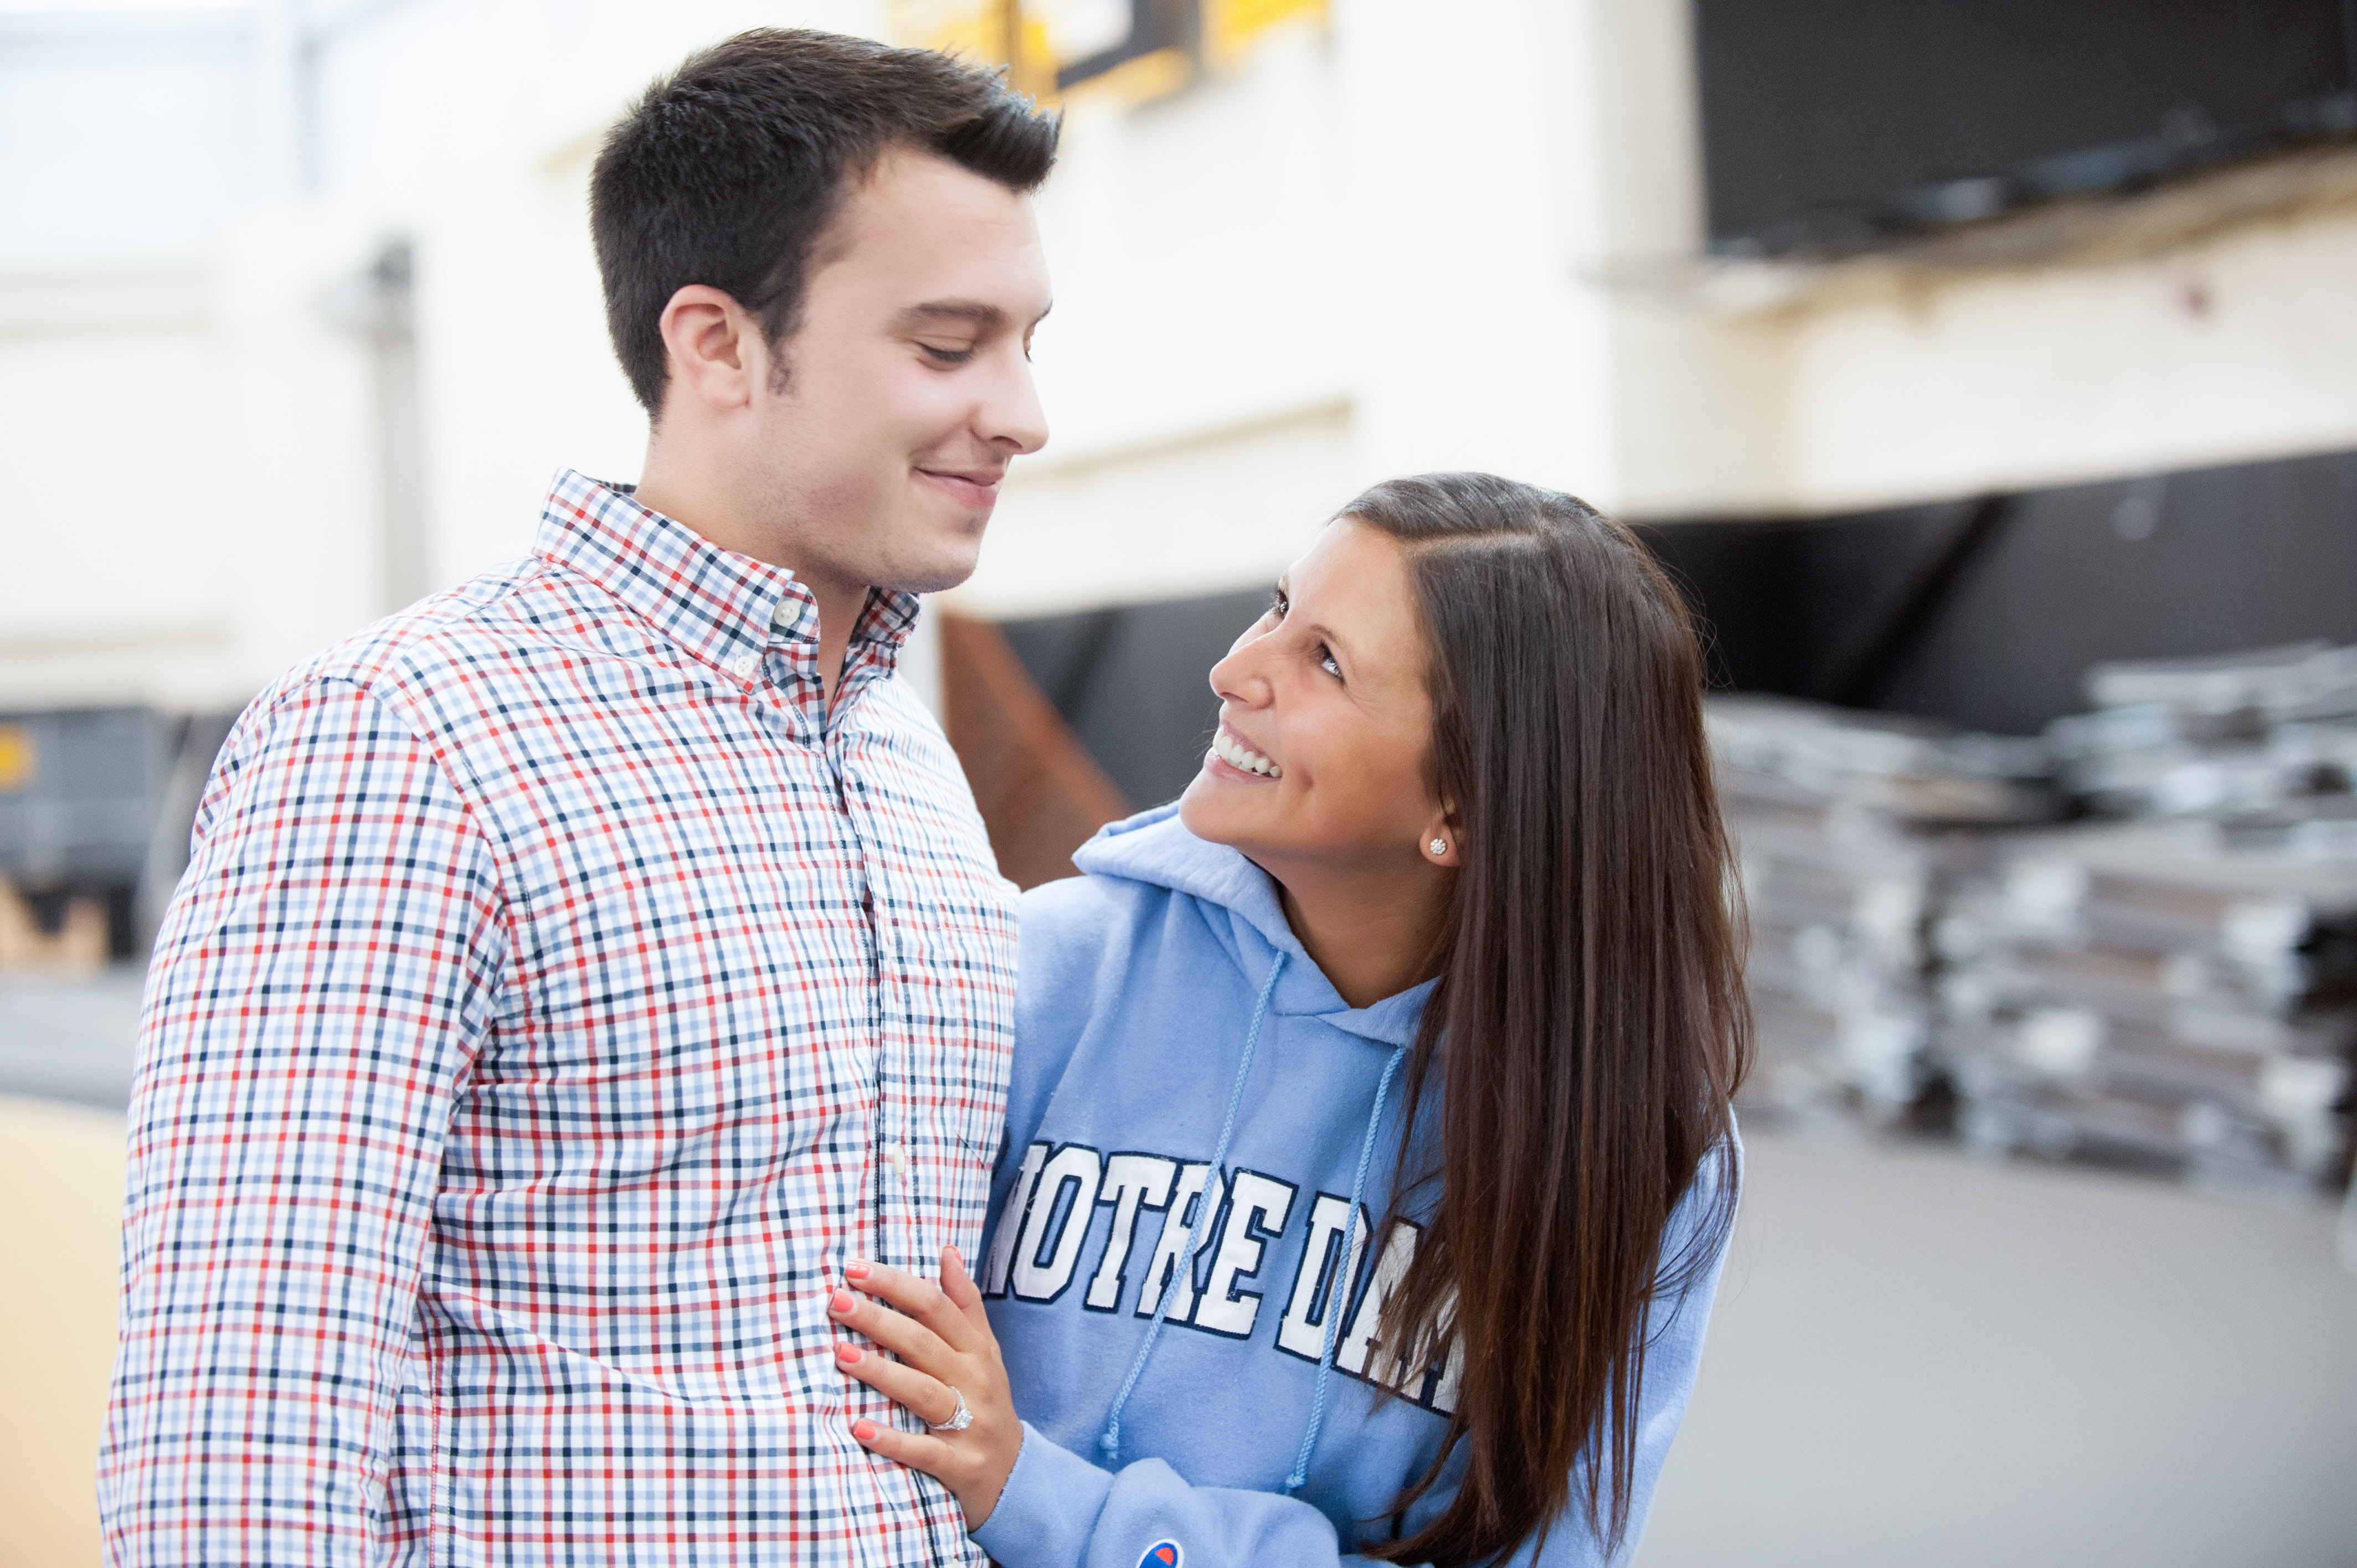 Image 18 of Marriage Proposal at Lacrosse Practice